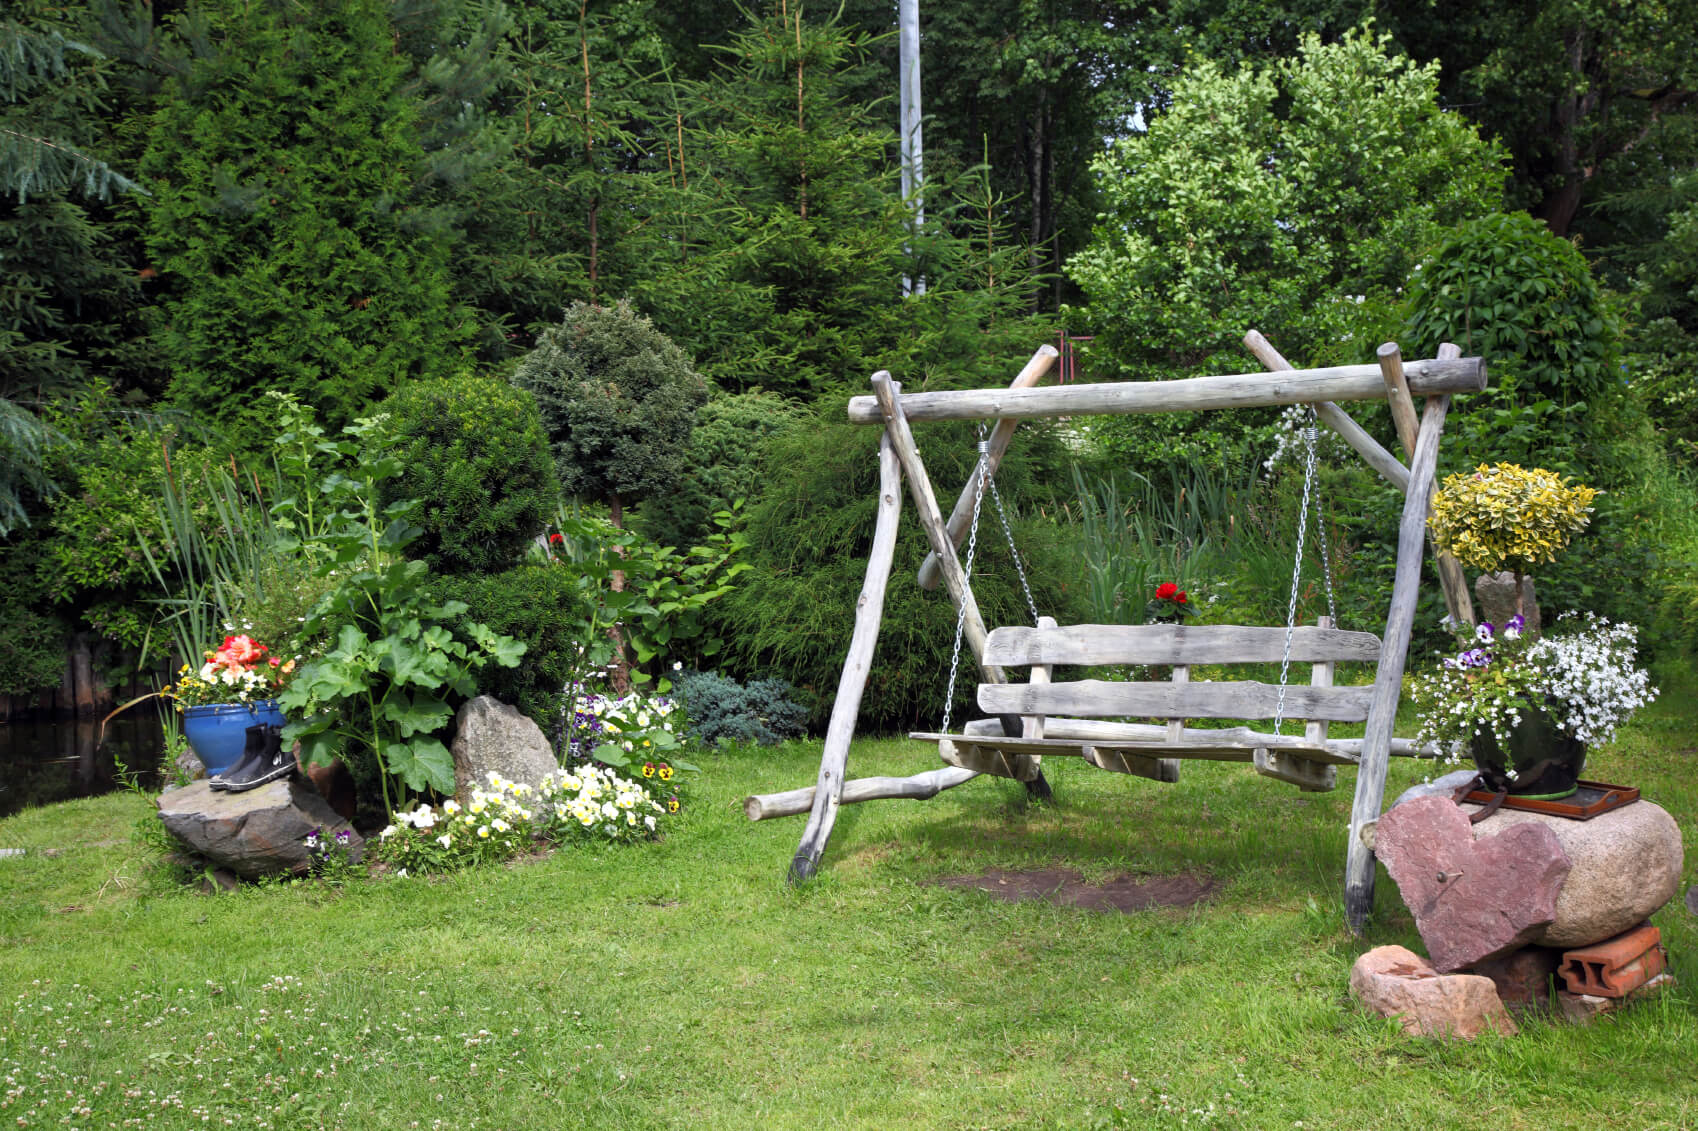 Here is a swing with a raw wood feel, which appears to be made from found and unfinished wood. This looks great out in a garden, amongst the large stones and near a stream. This natural wood design blends well into nature.